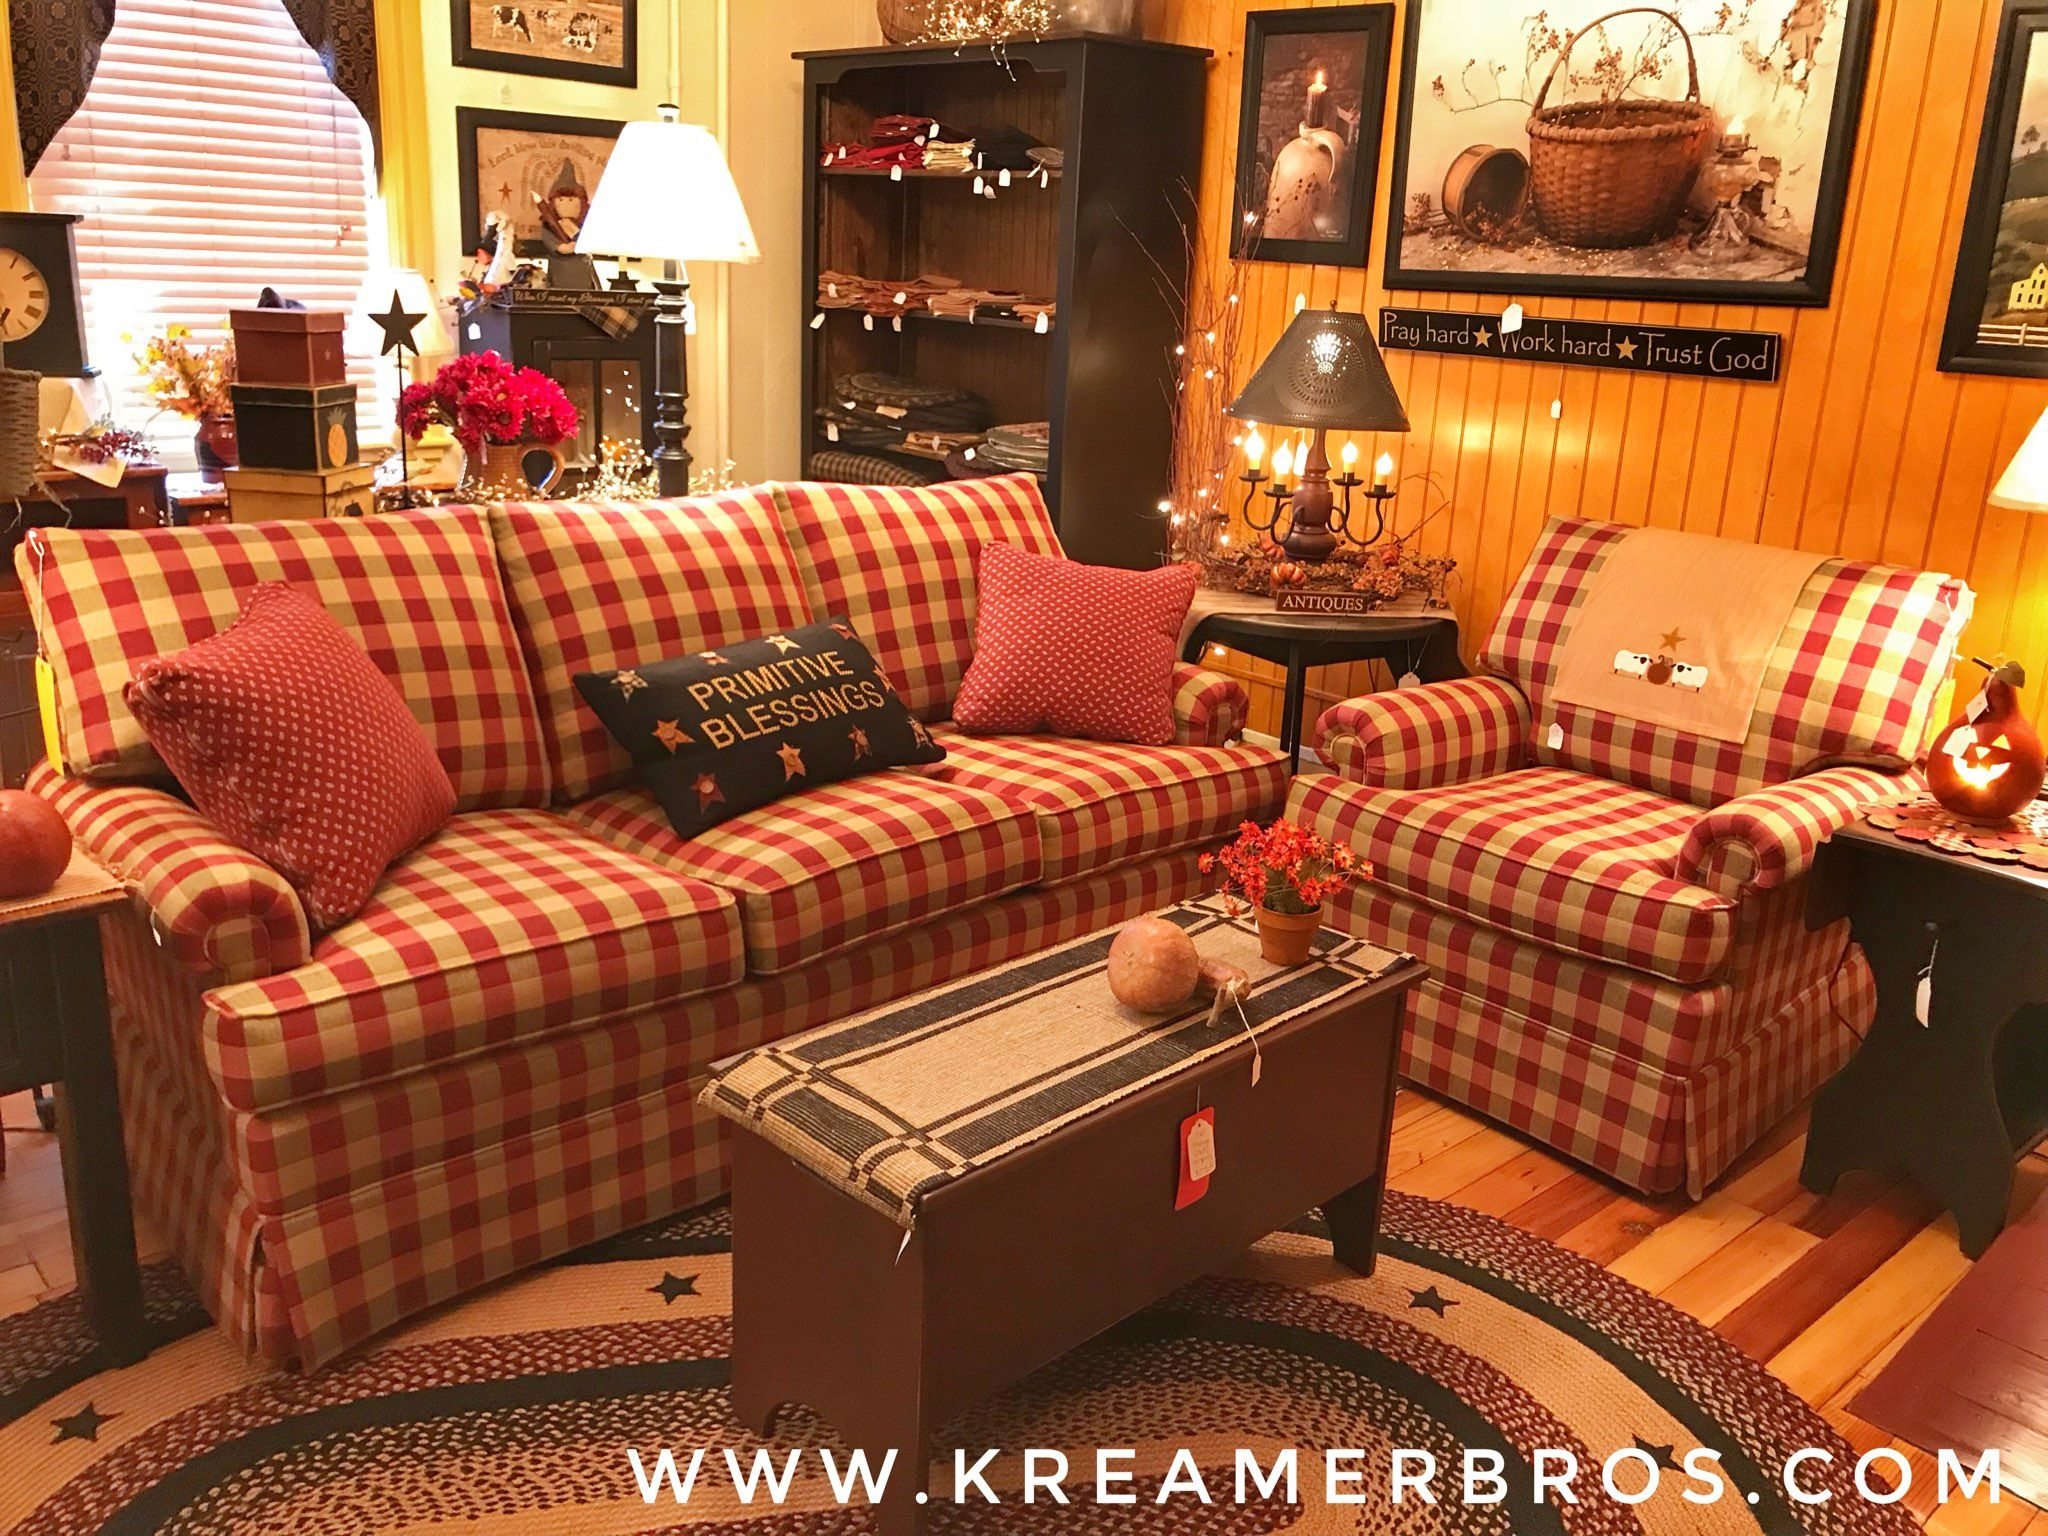 Red check country style sofa with soft, plush cushions